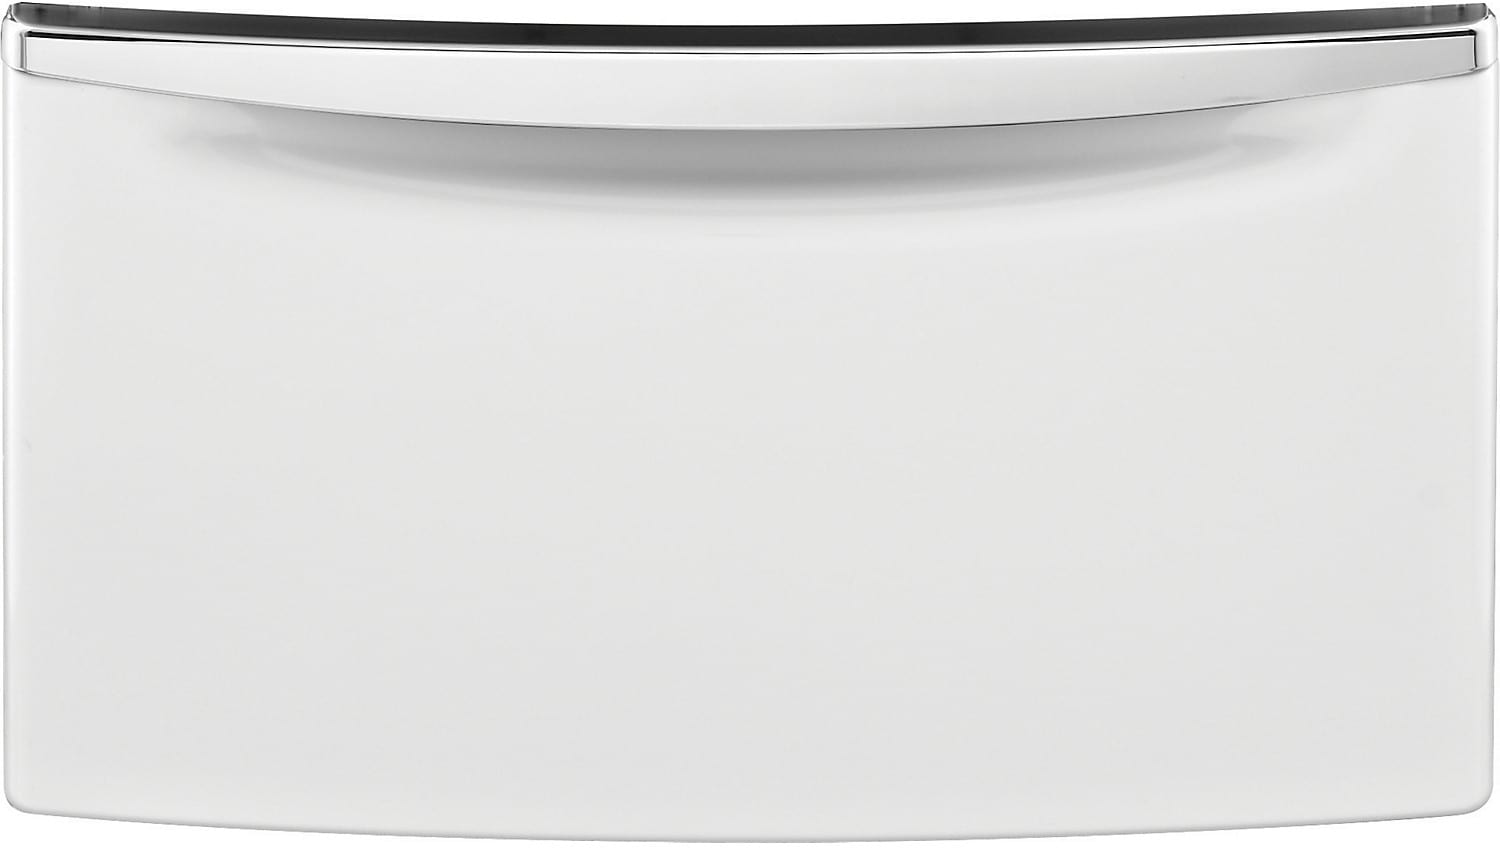 "Whirlpool 15.5"" H Laundry Pedestal w/Storage Drawer - White"